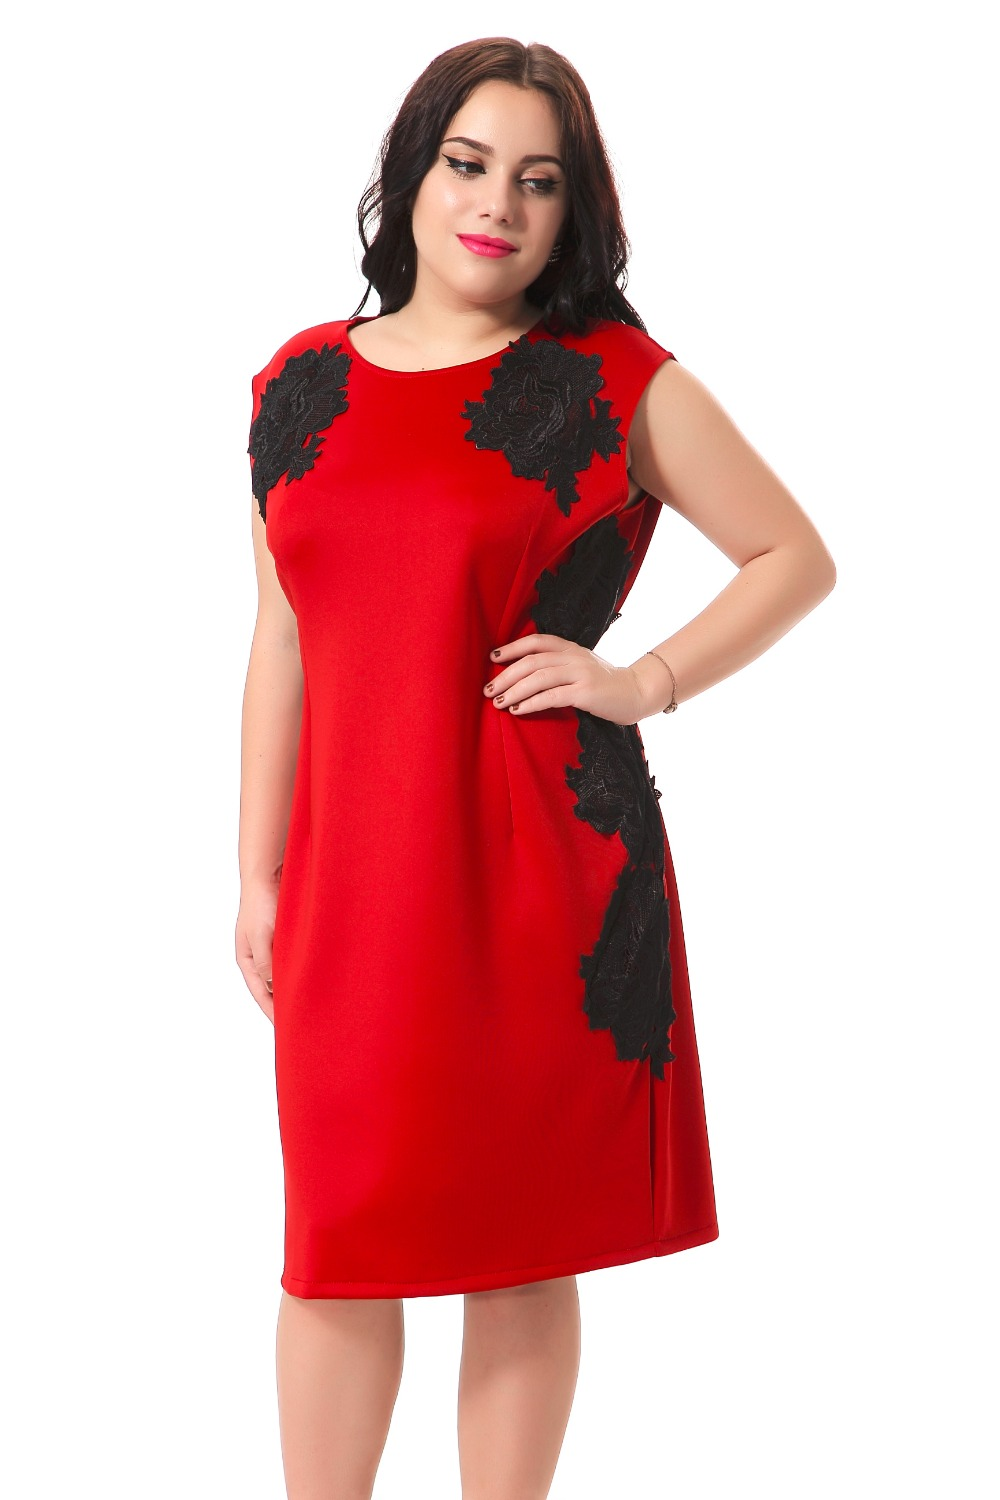 HD wallpapers plus size red pencil dress